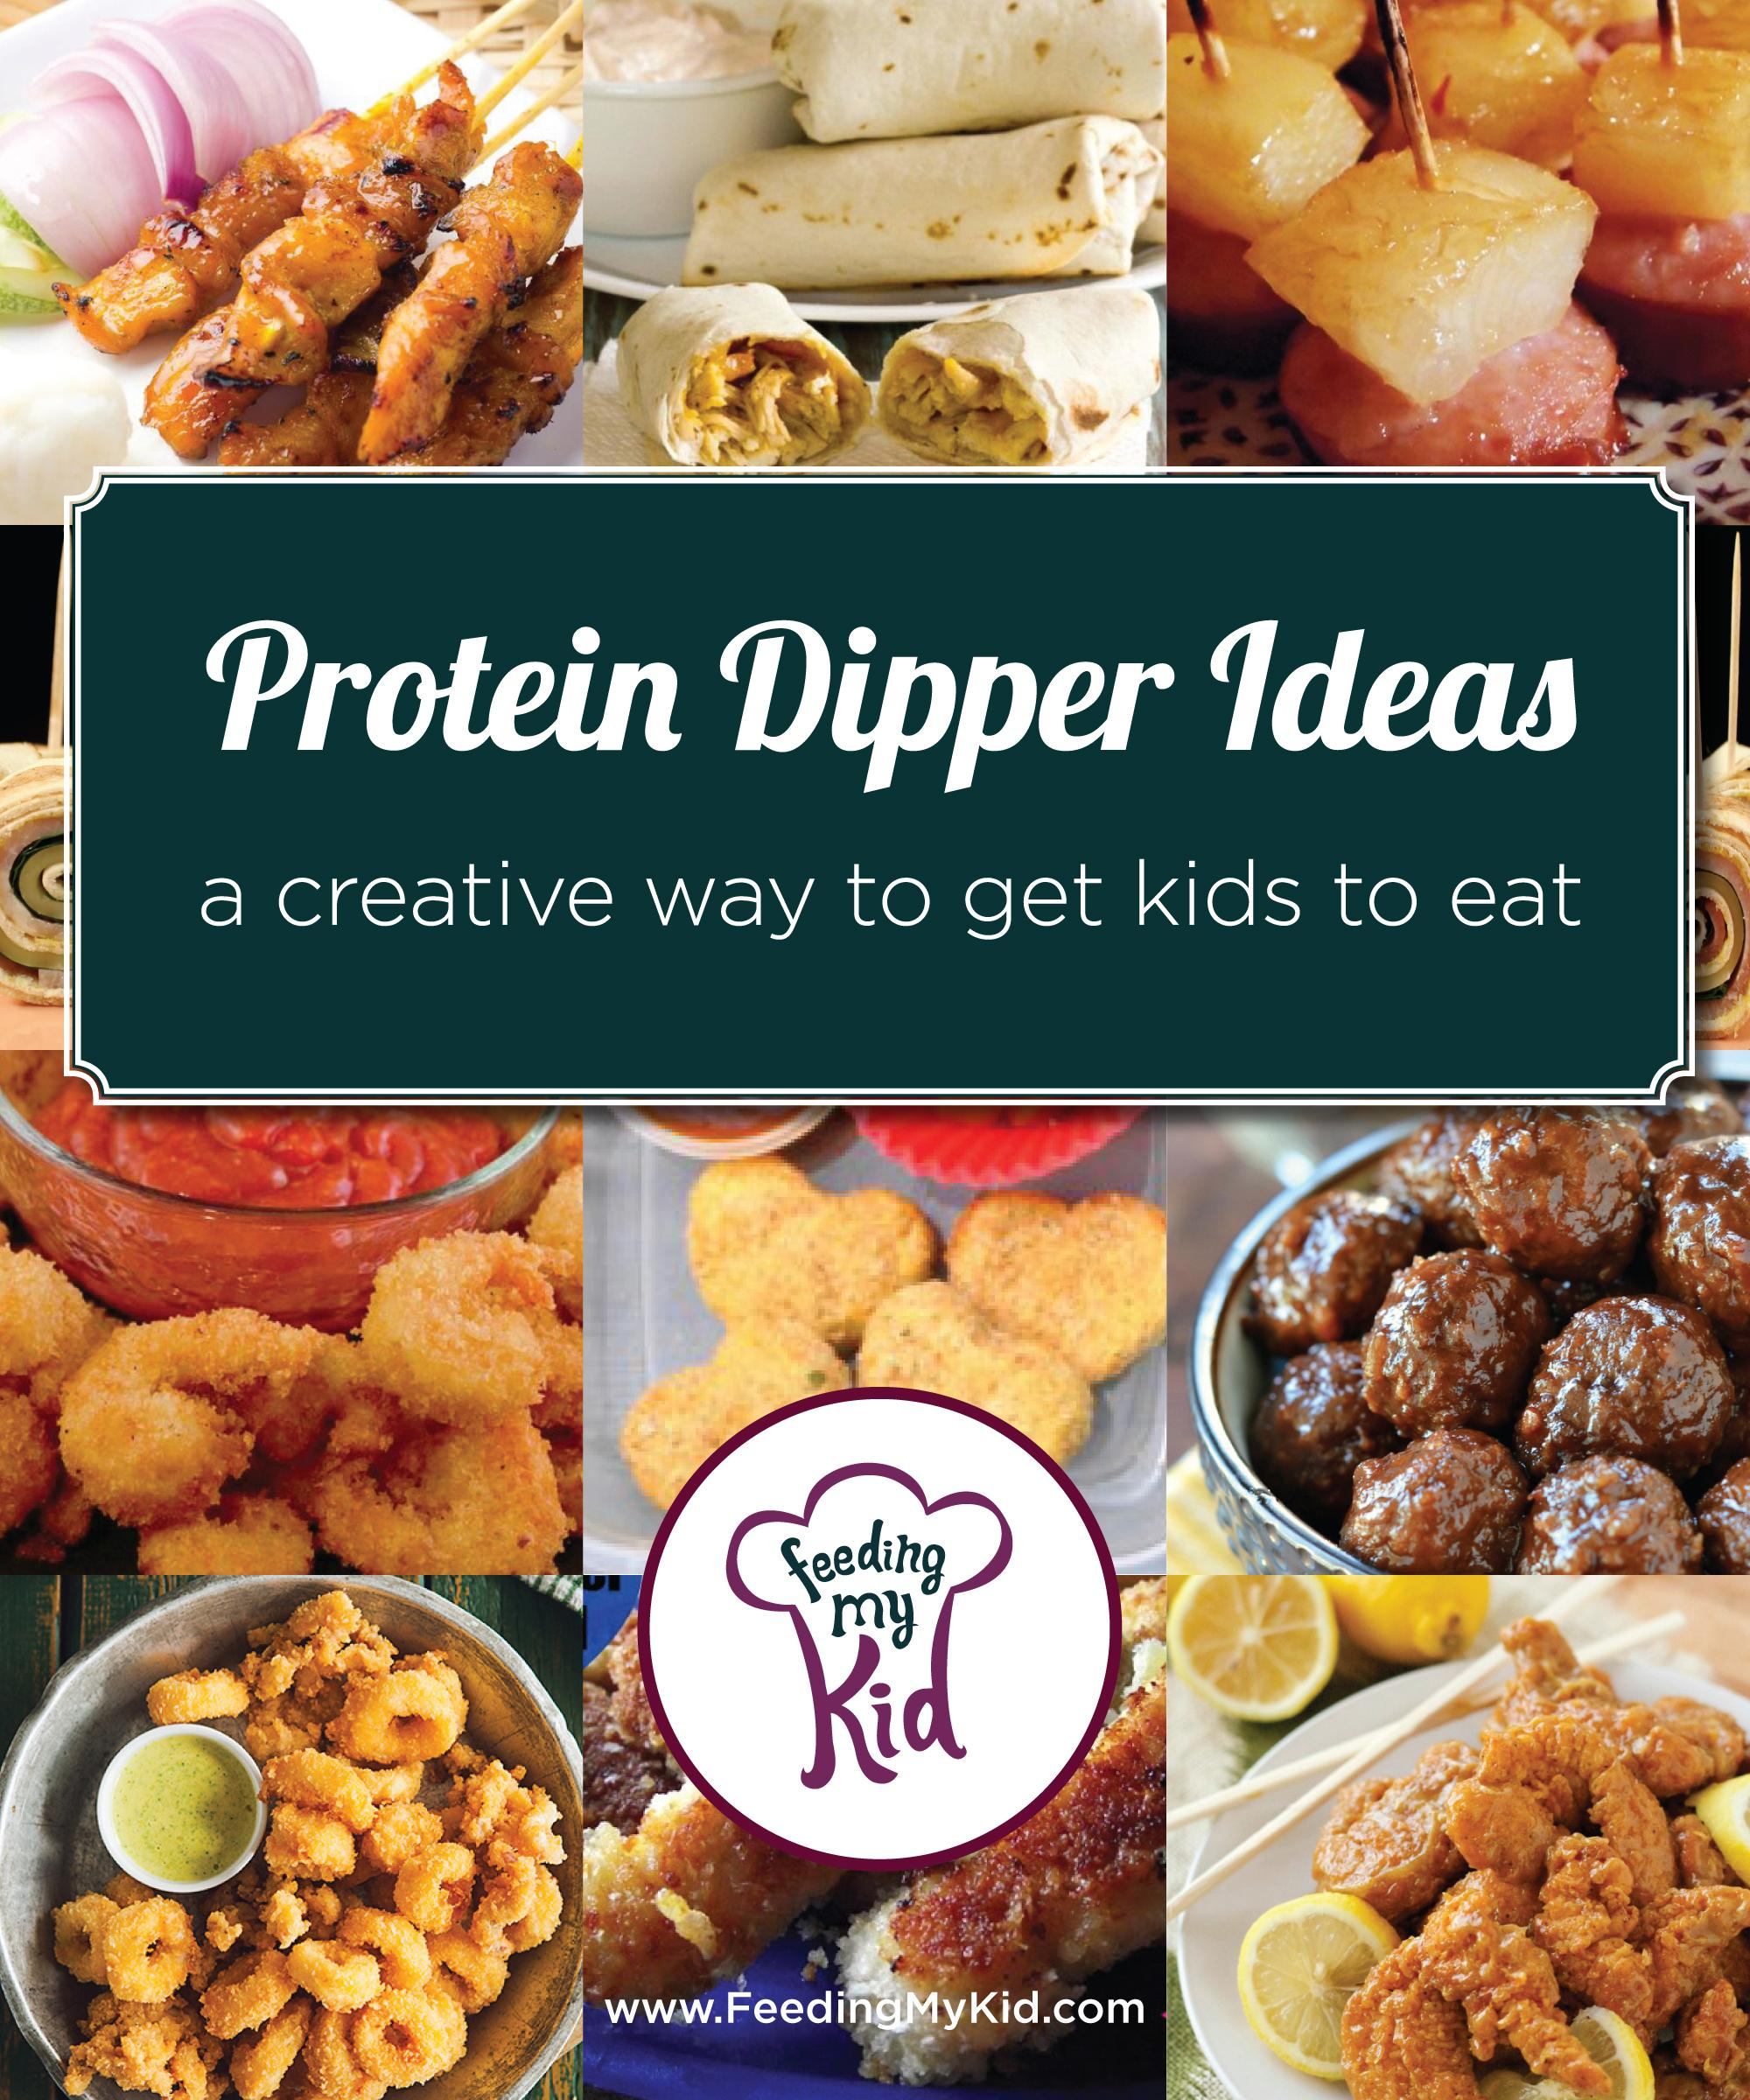 Protein Dippers Ideas